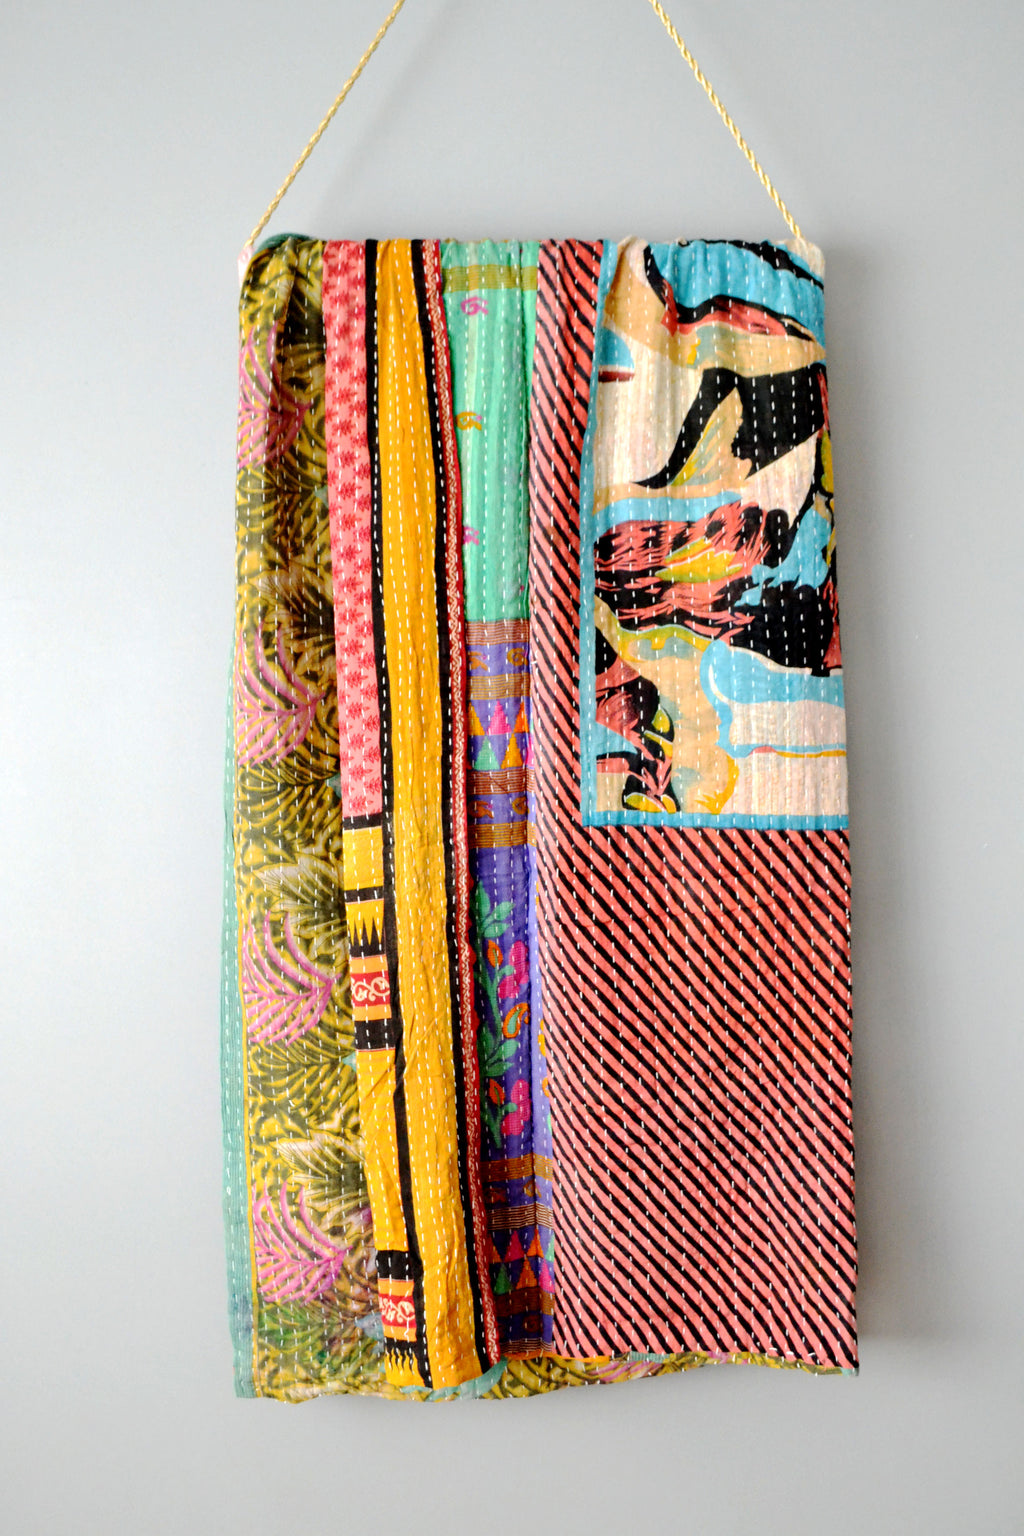 Vintage Indian Colorful Kantha Quilt by Yuba Mercantile